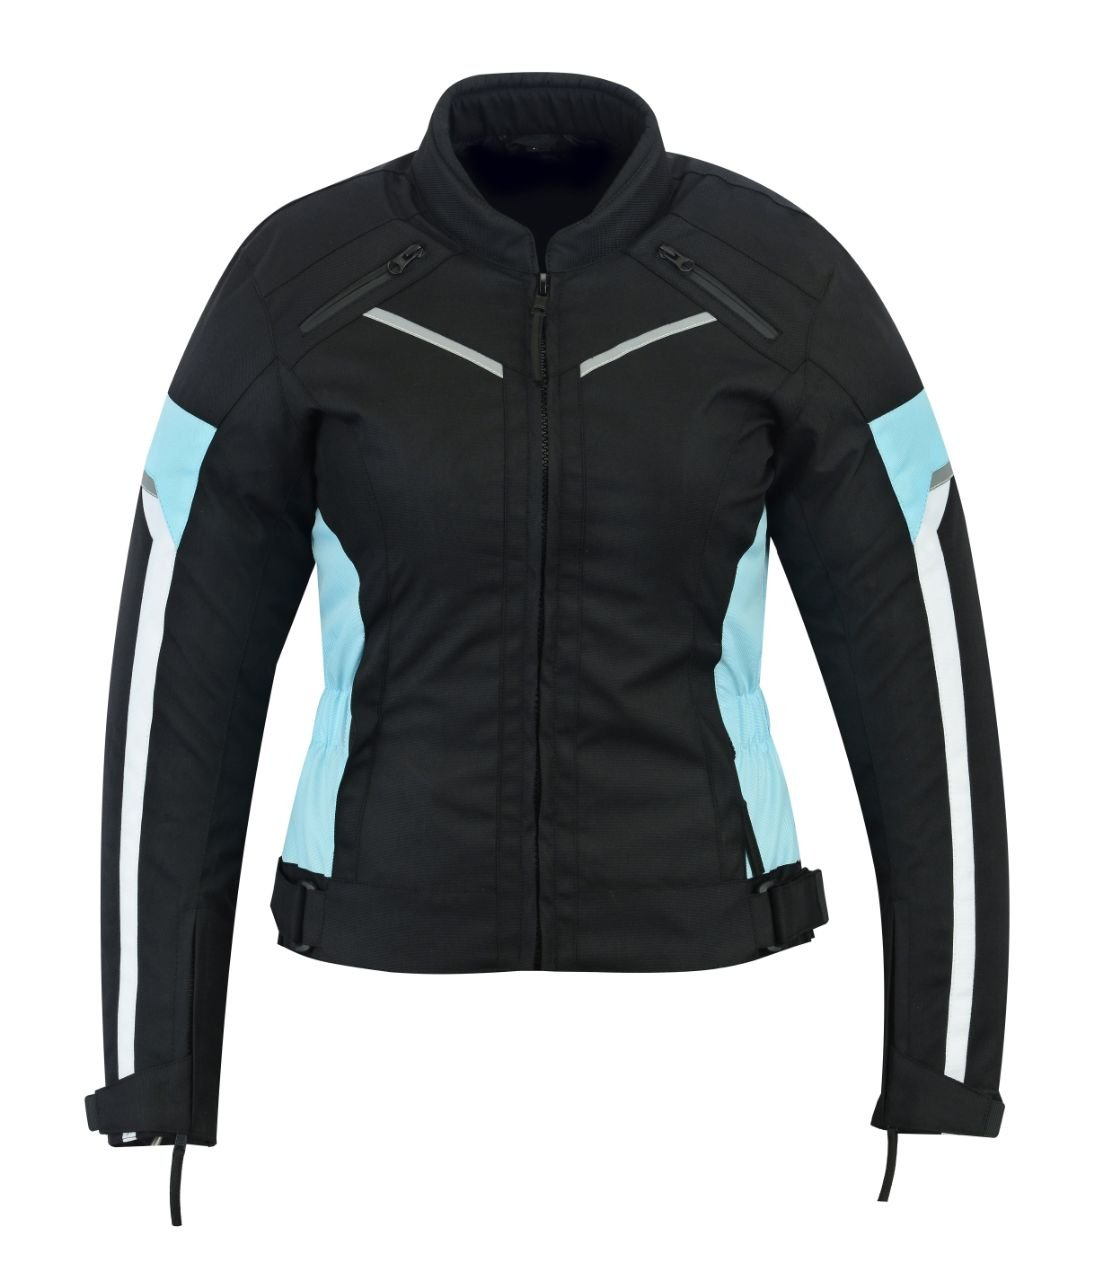 WOMENS MOTORCYCLE ARMORED HIGH PROTECTION WITH ARMOR WATERPROOF ALL WEATHERS JACKET BLACK/BLUE WJ-1834TB (S)